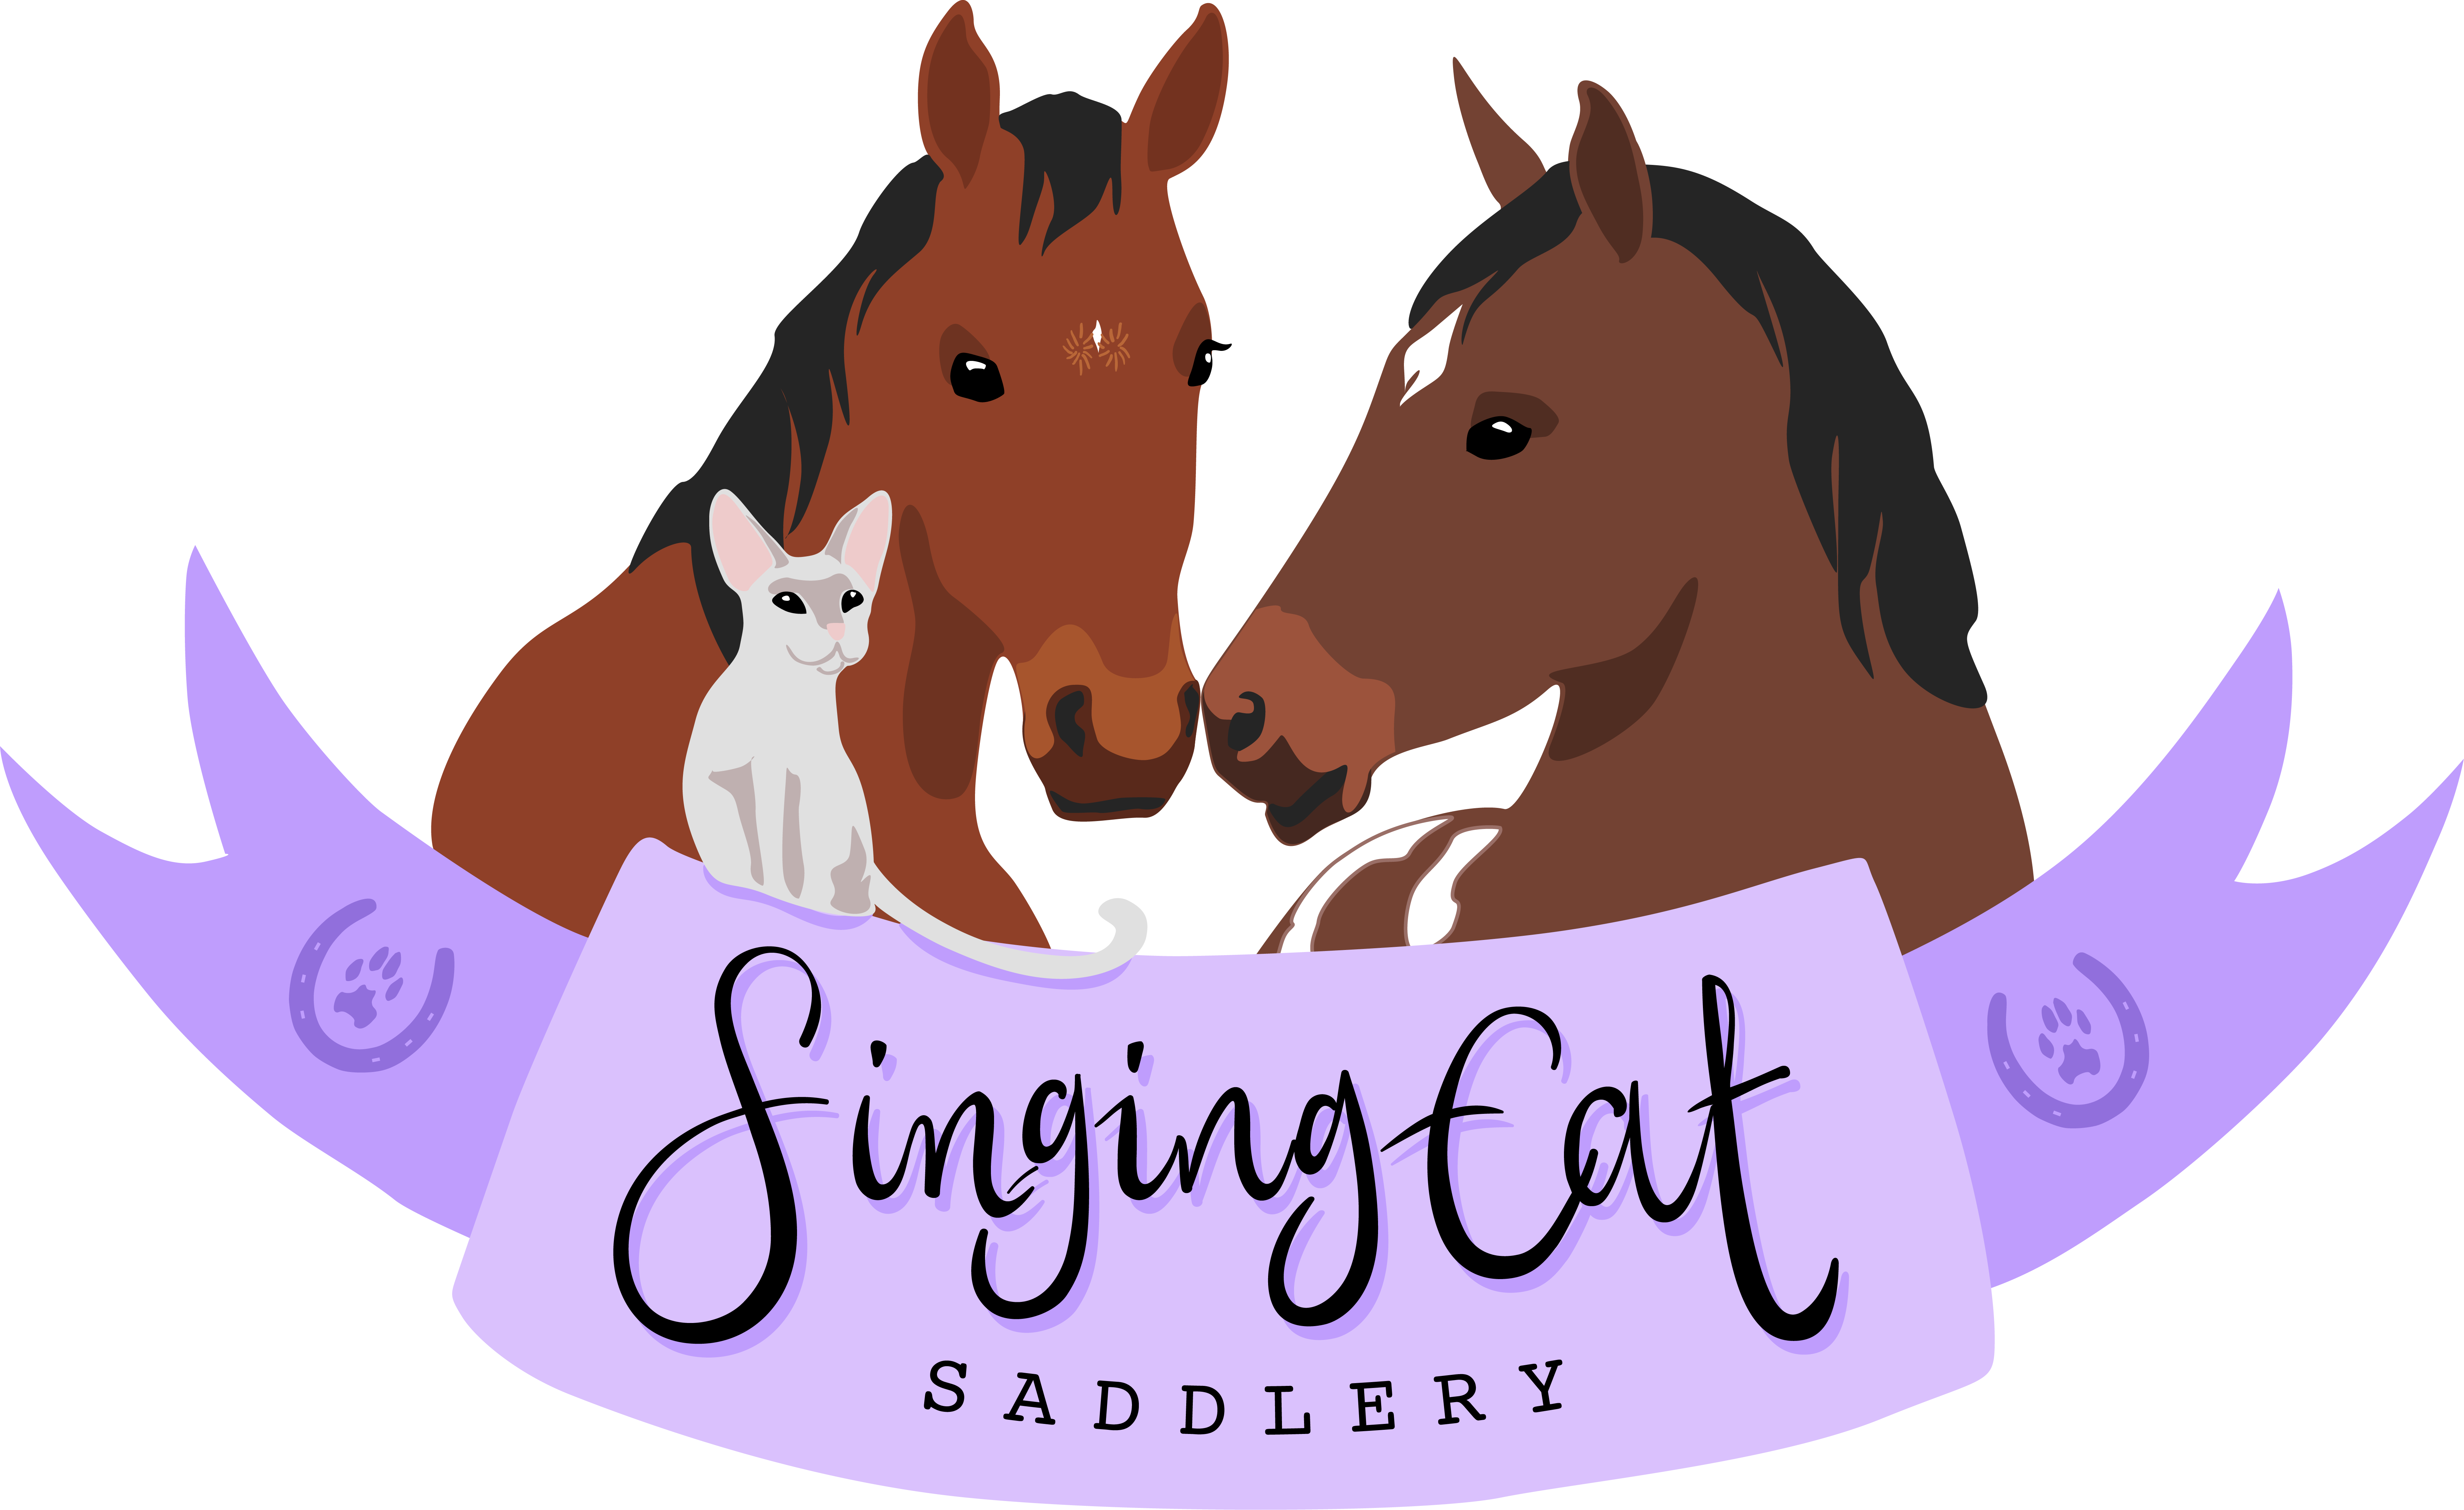 Singing Cat Saddlery